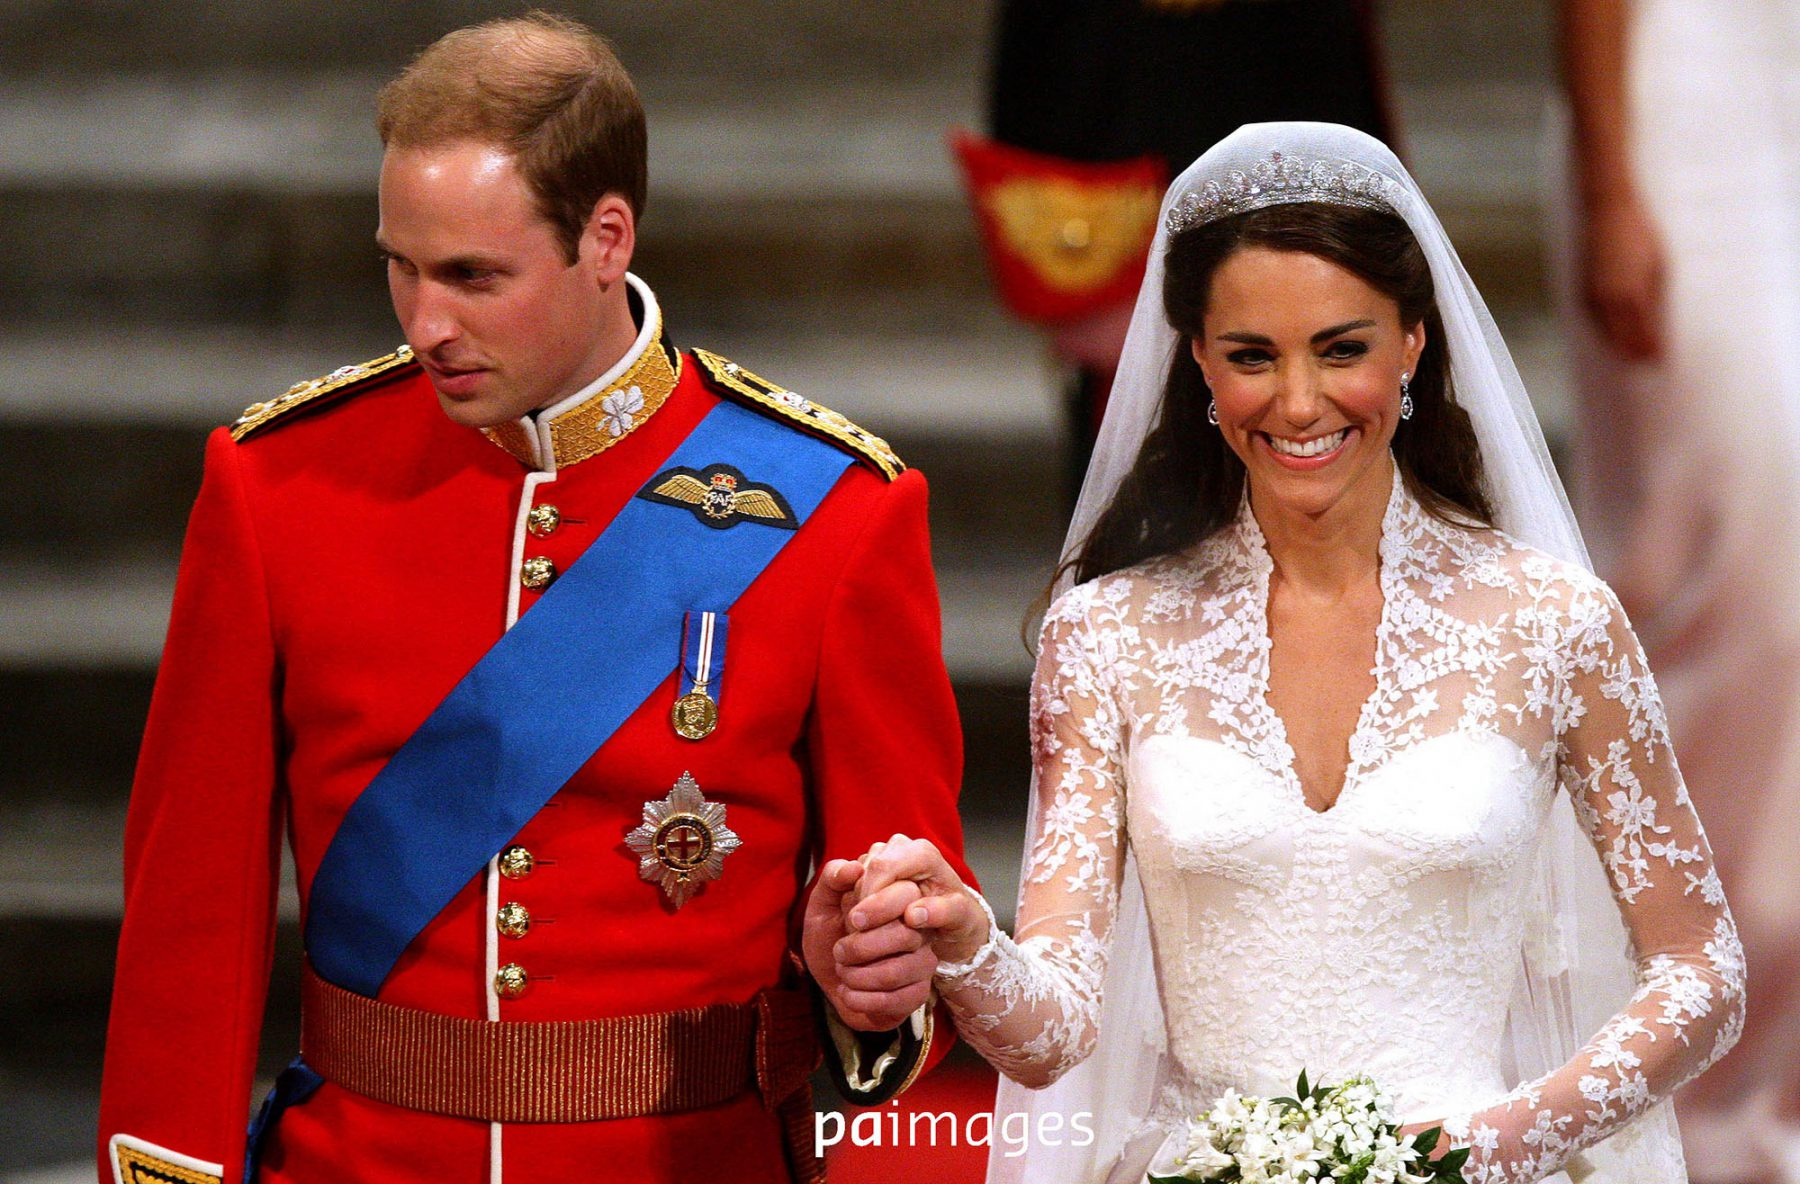 Prince William and Kate Middleton walking up the aisle together in Westminster Abbey